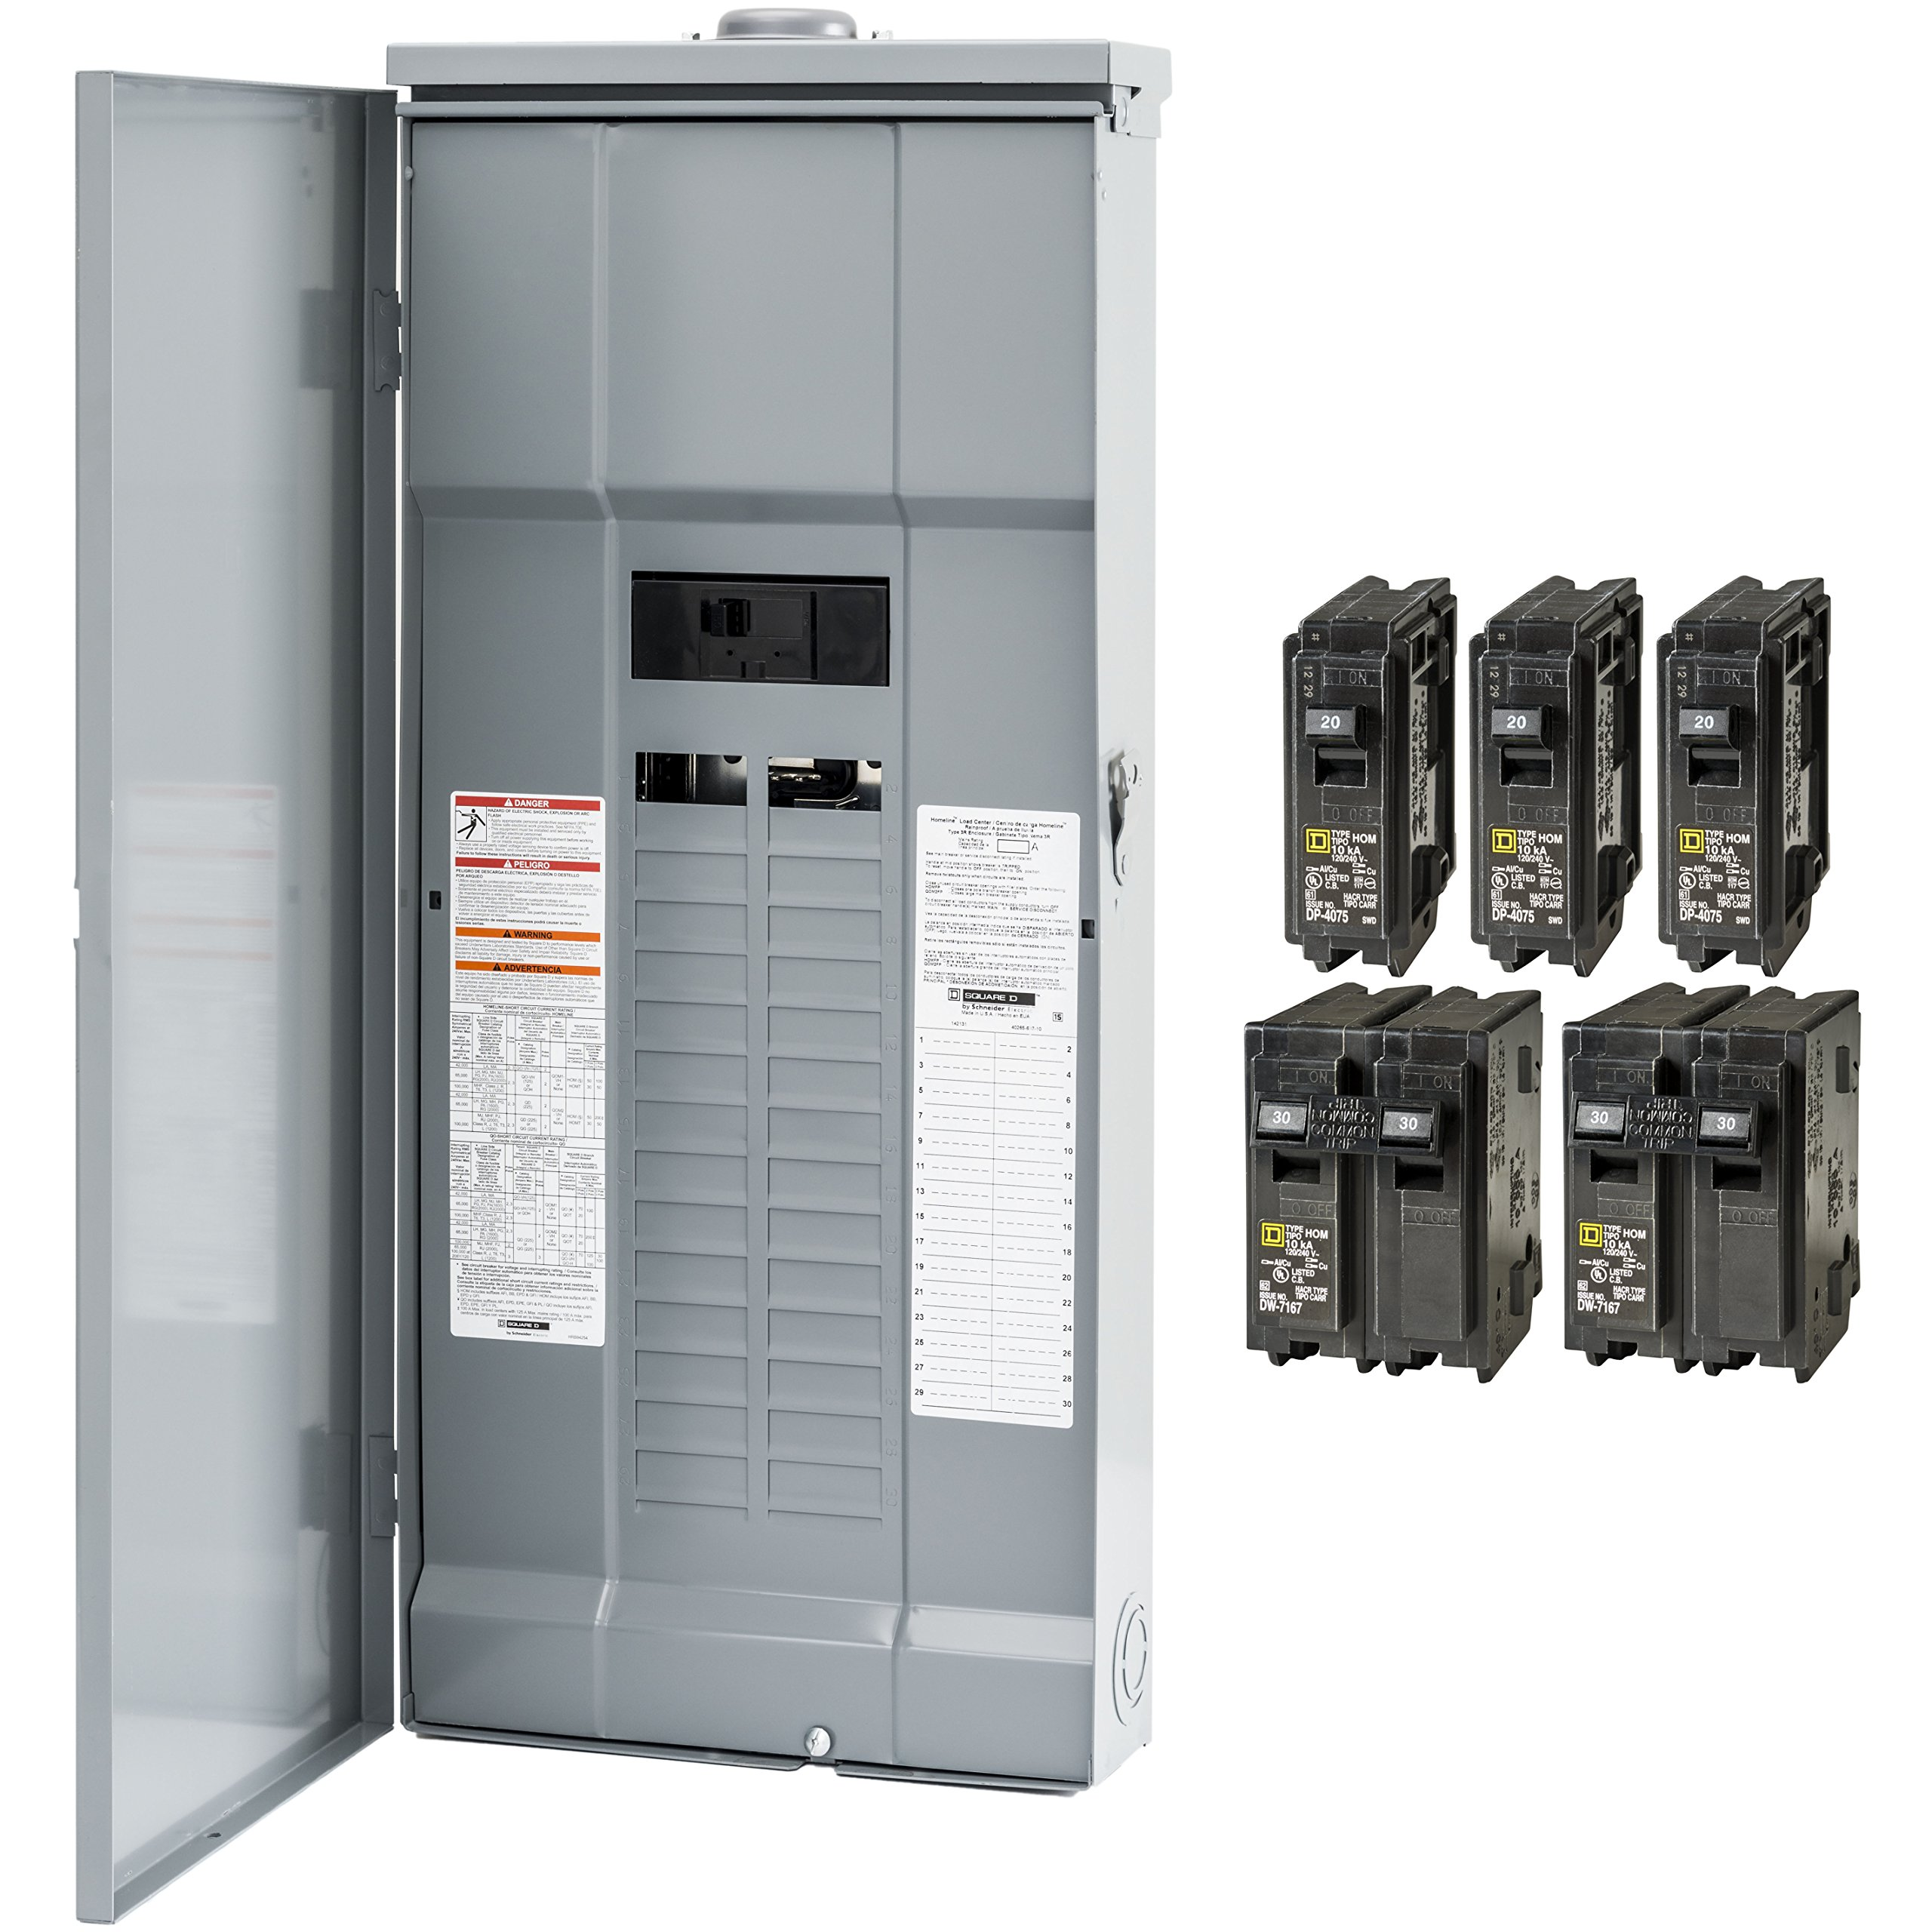 , Plug-on Neutral Ready Square D by Schneider Electric HOM3060M100PC Homeline 100 Amp 30-Space 60-Circuit Indoor Main Breaker Load Center with Cover